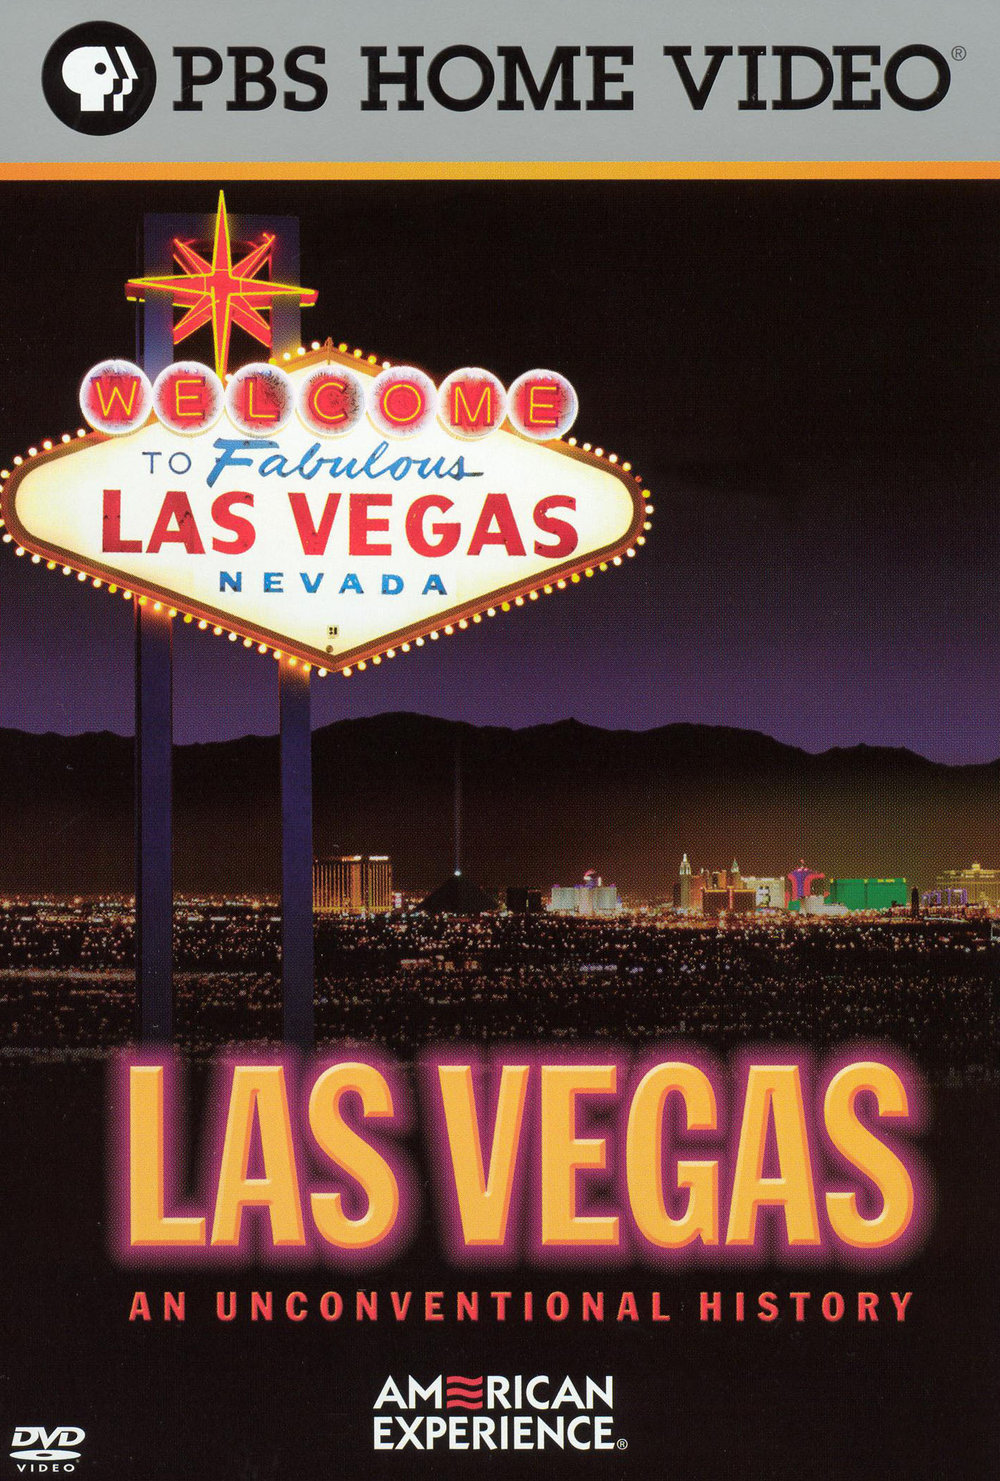 LAS VEGAS: AN UNCONVENTIONAL HISTORY  (2005)  EDITOR  PBS—AMERICAN EXPERIENCE